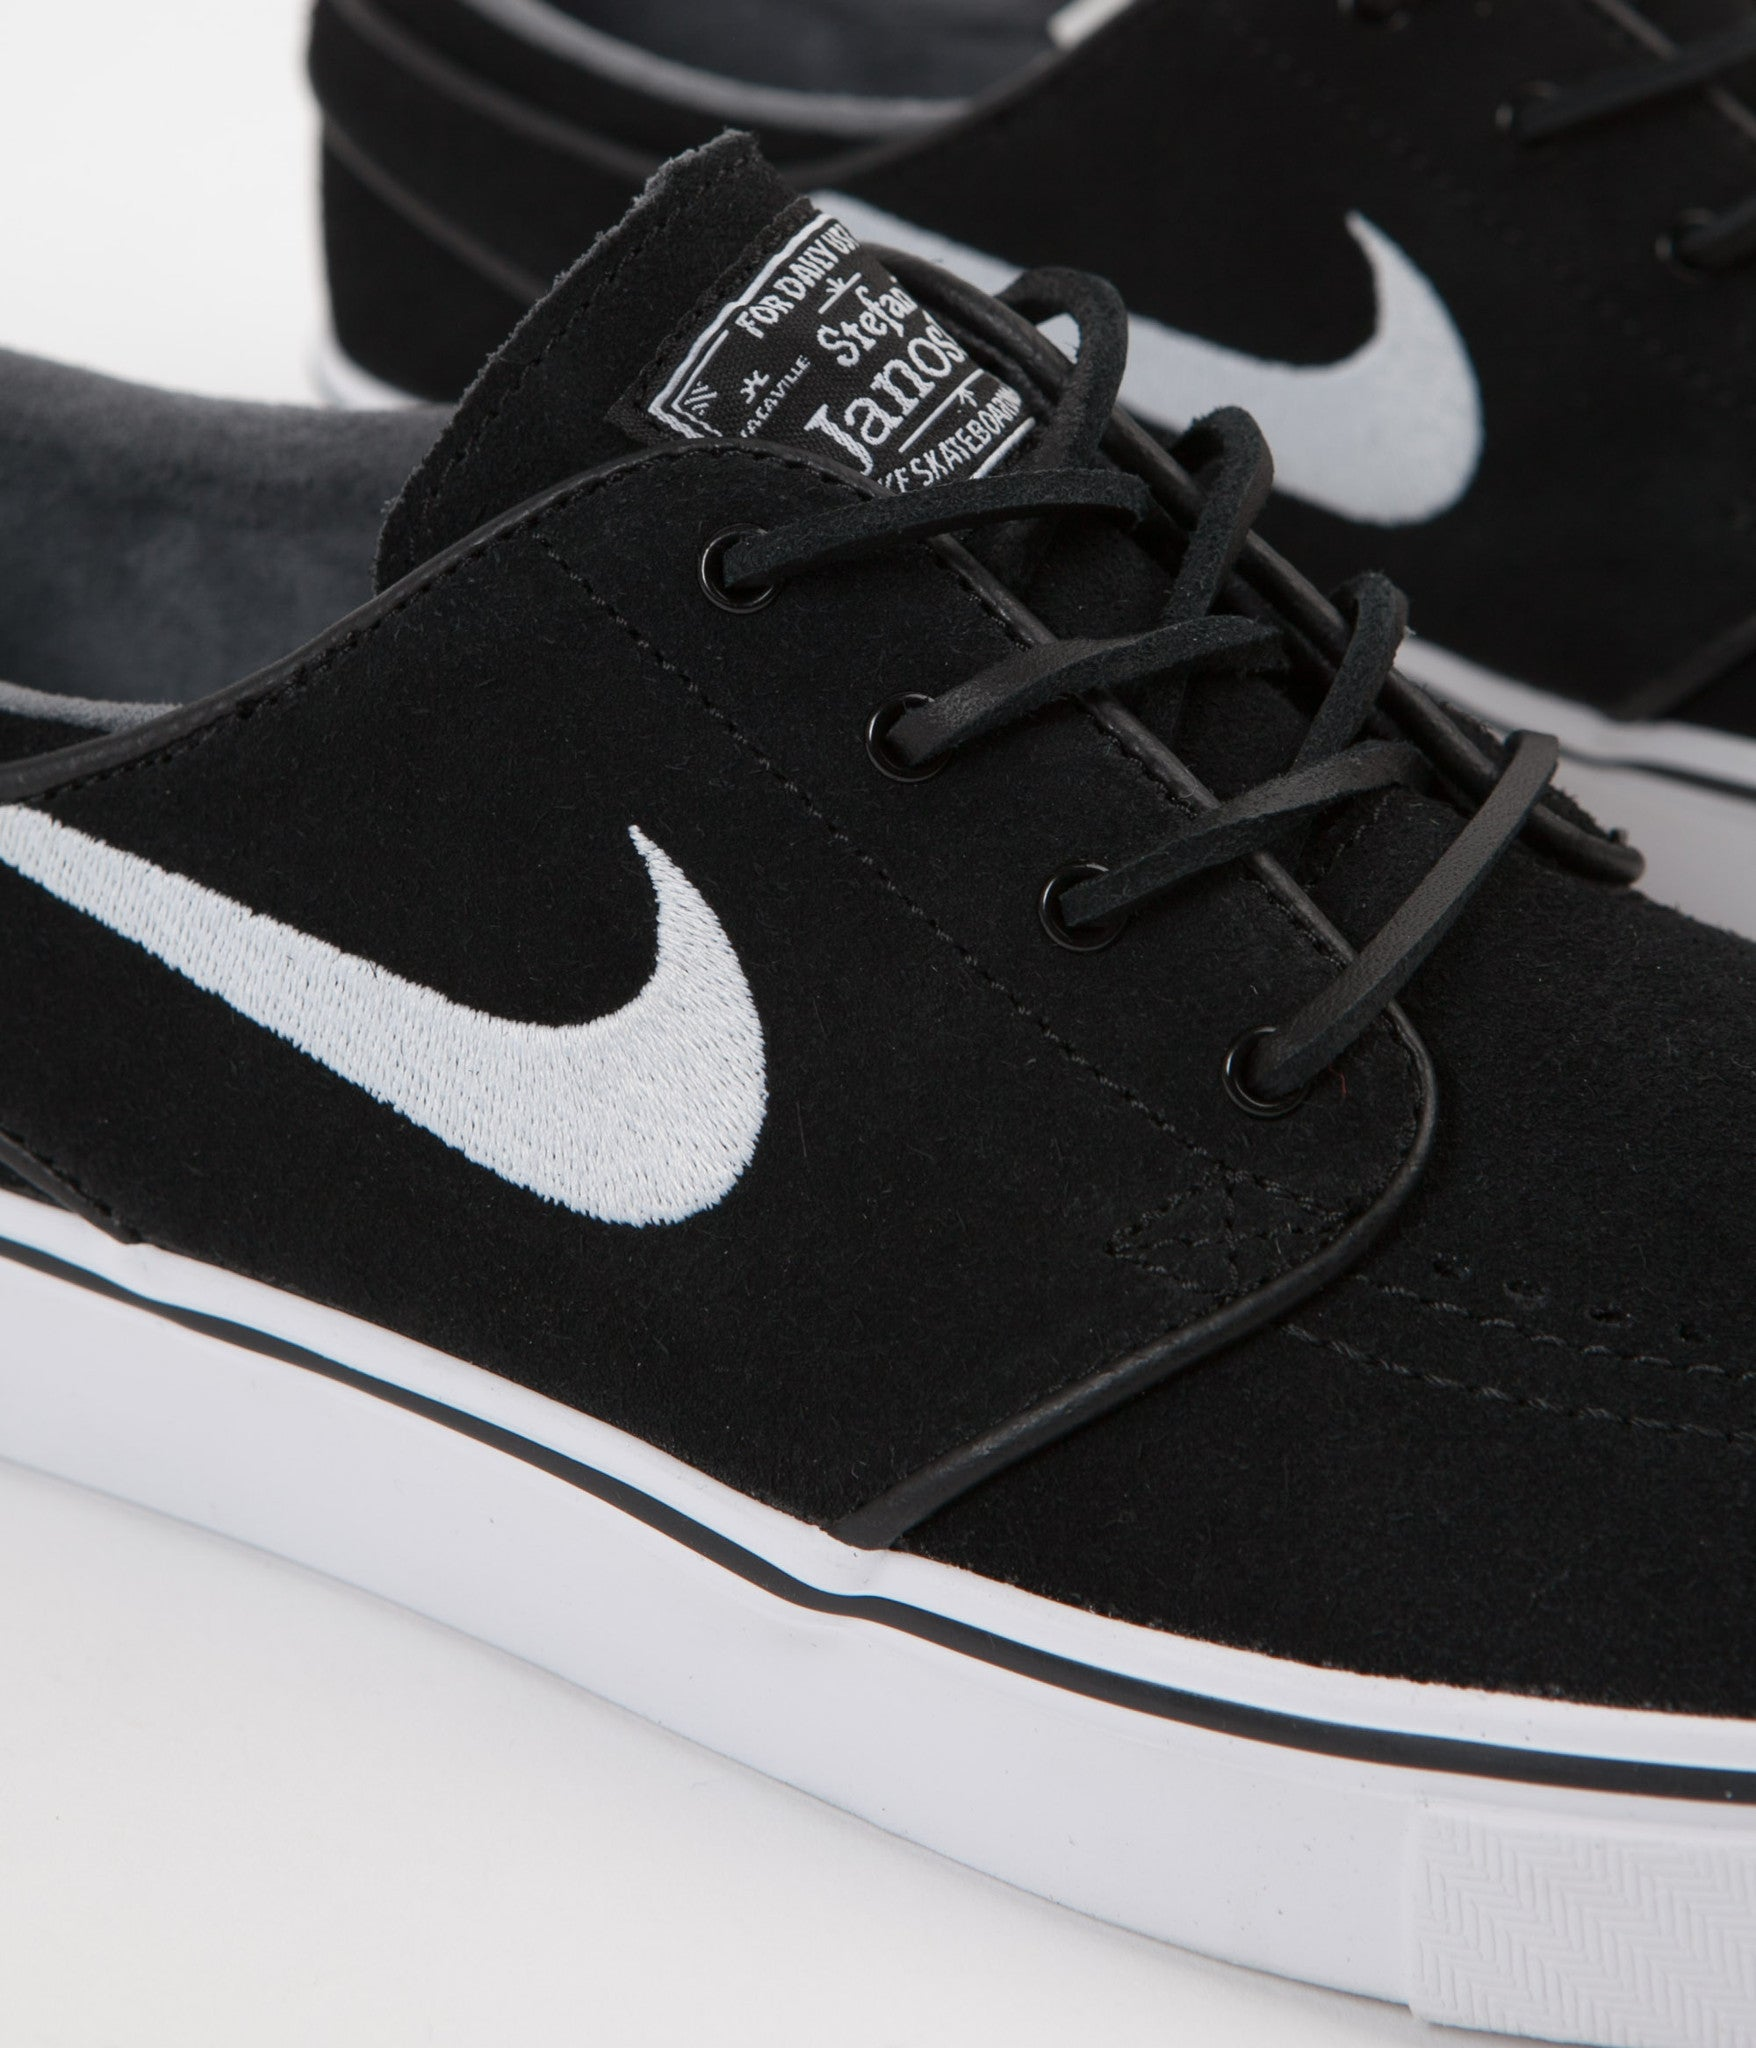 finest selection 744d8 7da6f ... Nike SB Stefan Janoski OG Shoes - Black   White - Gum Light Brown ...